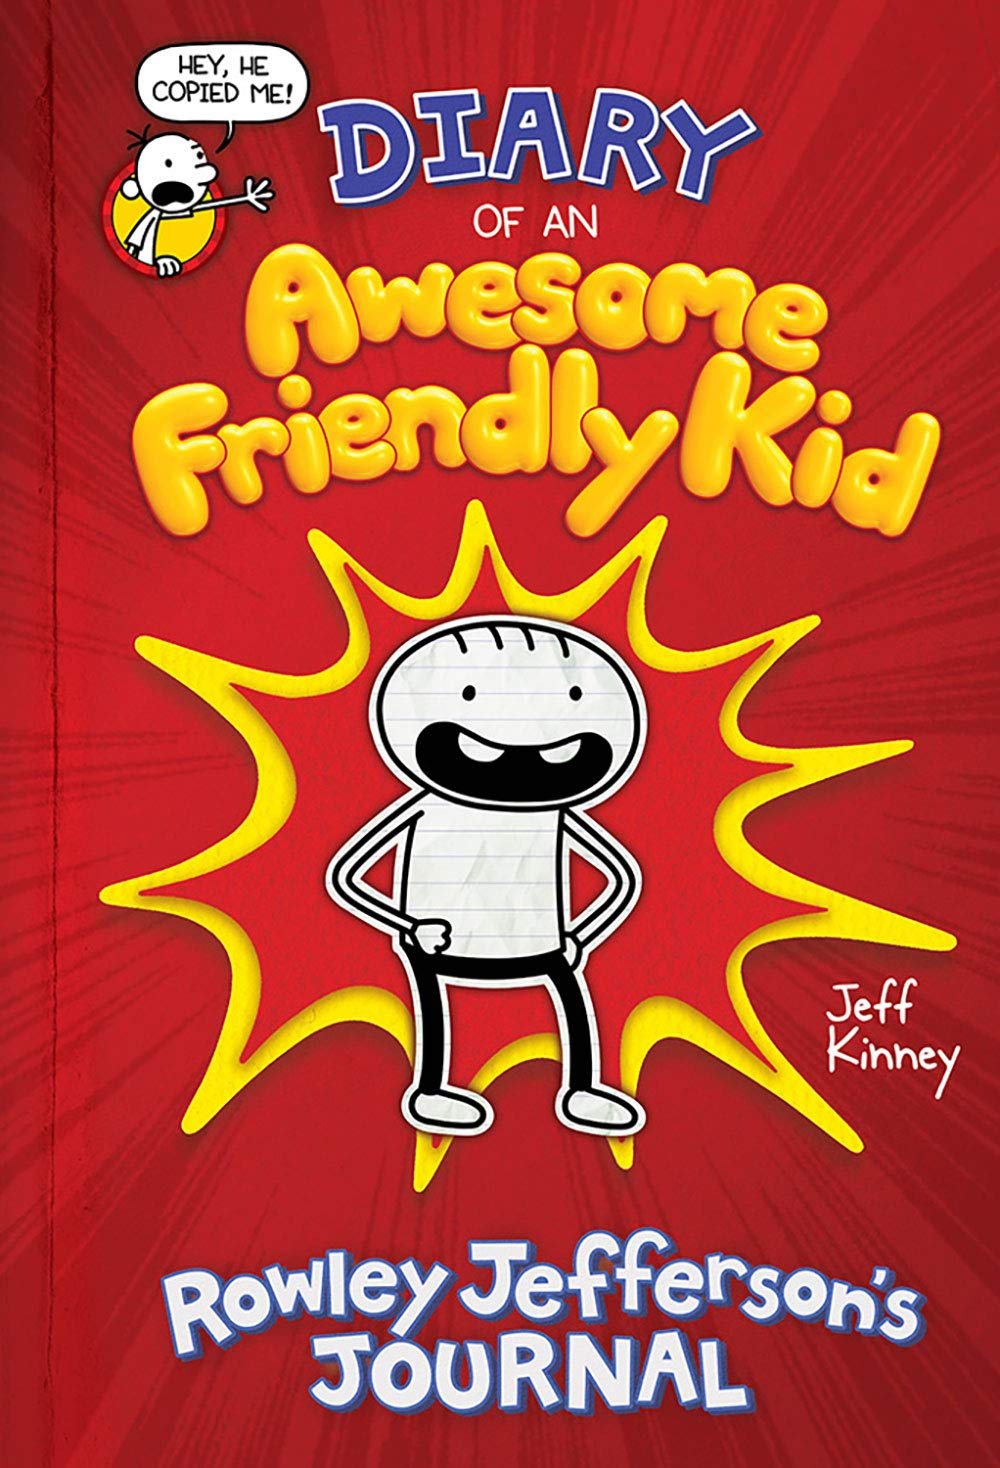 Awesome Friendly Kid 9781419740275/